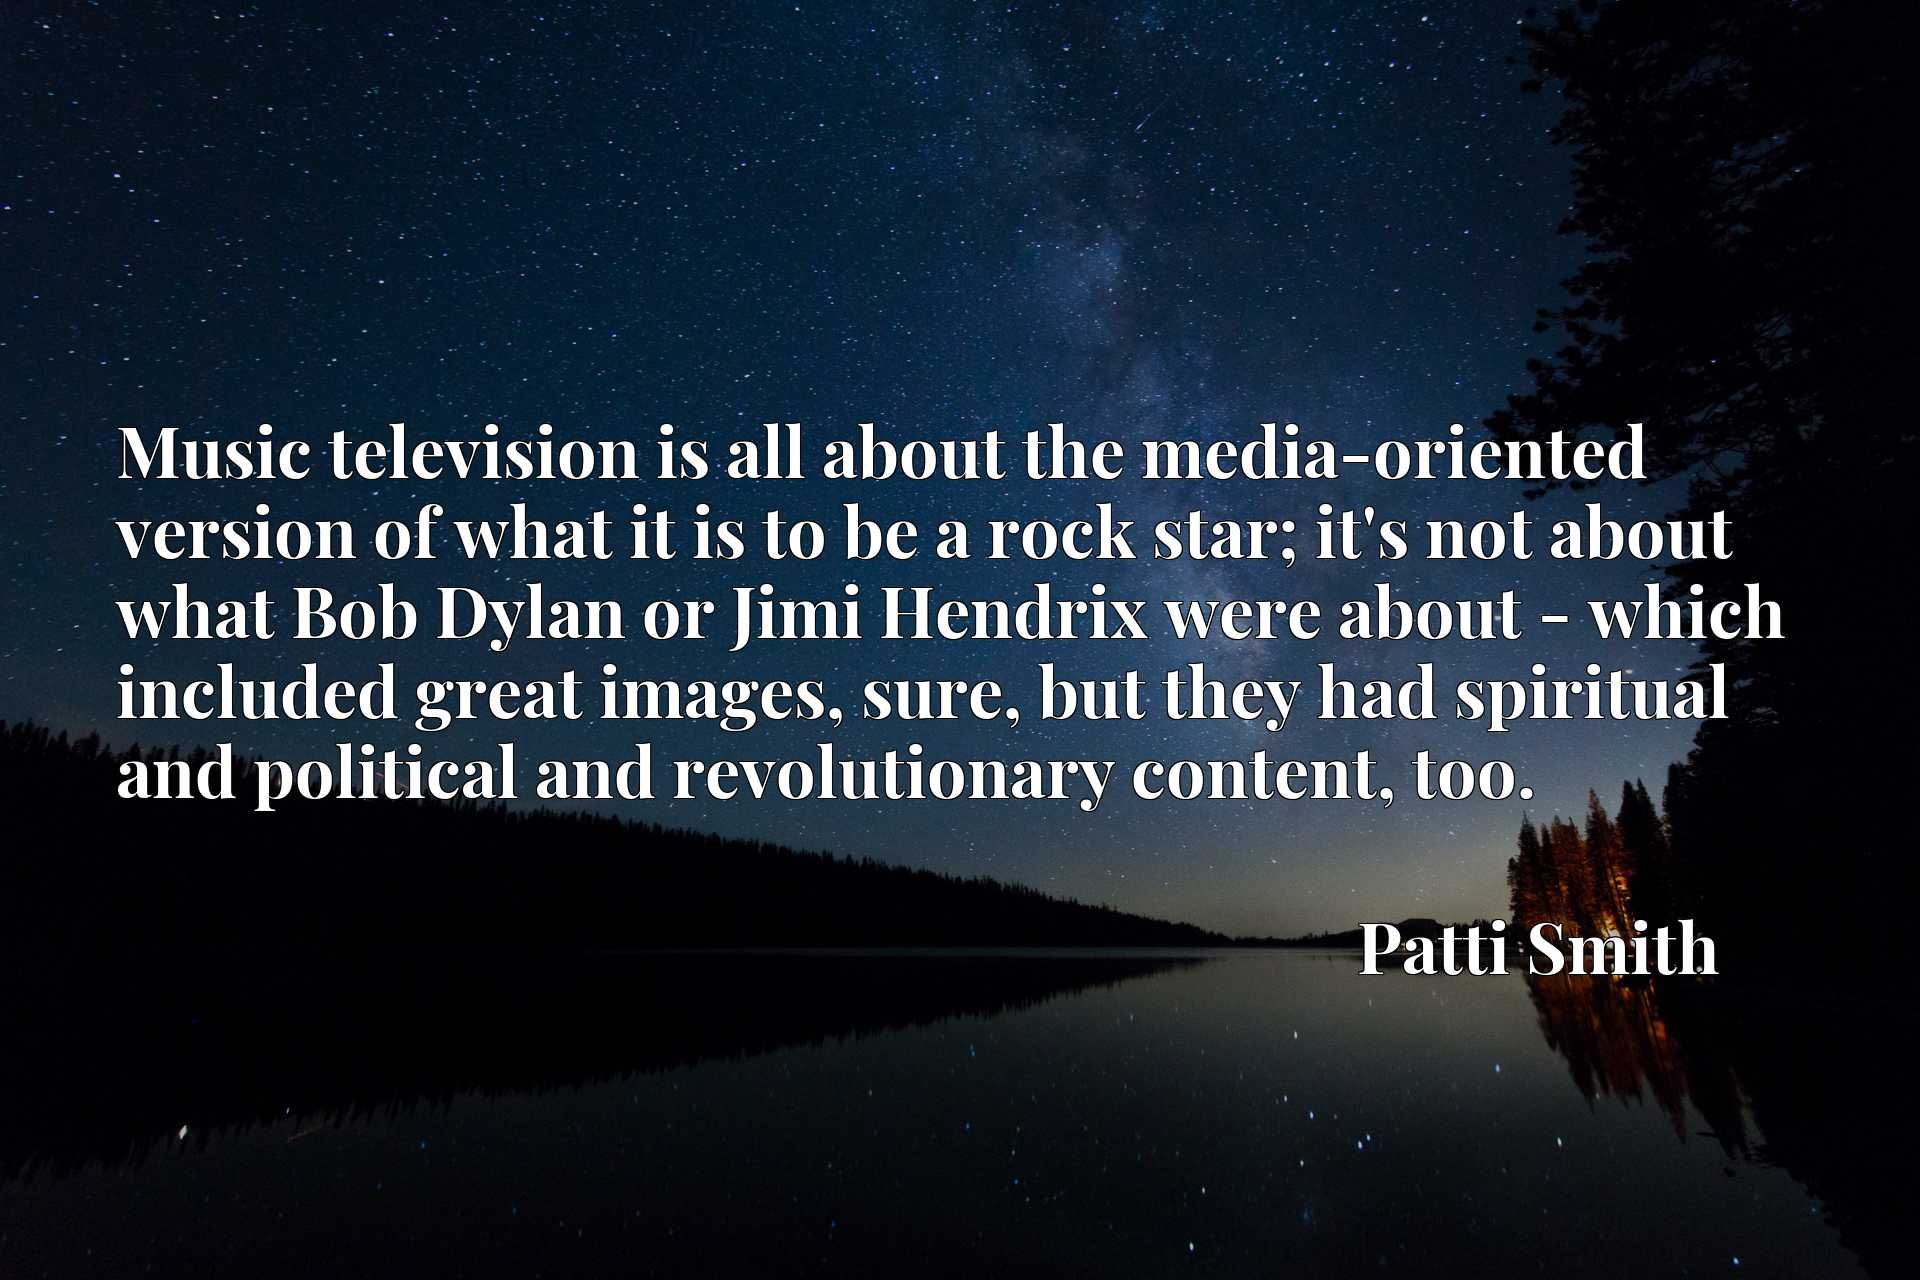 Music television is all about the media-oriented version of what it is to be a rock star; it's not about what Bob Dylan or Jimi Hendrix were about - which included great images, sure, but they had spiritual and political and revolutionary content, too.